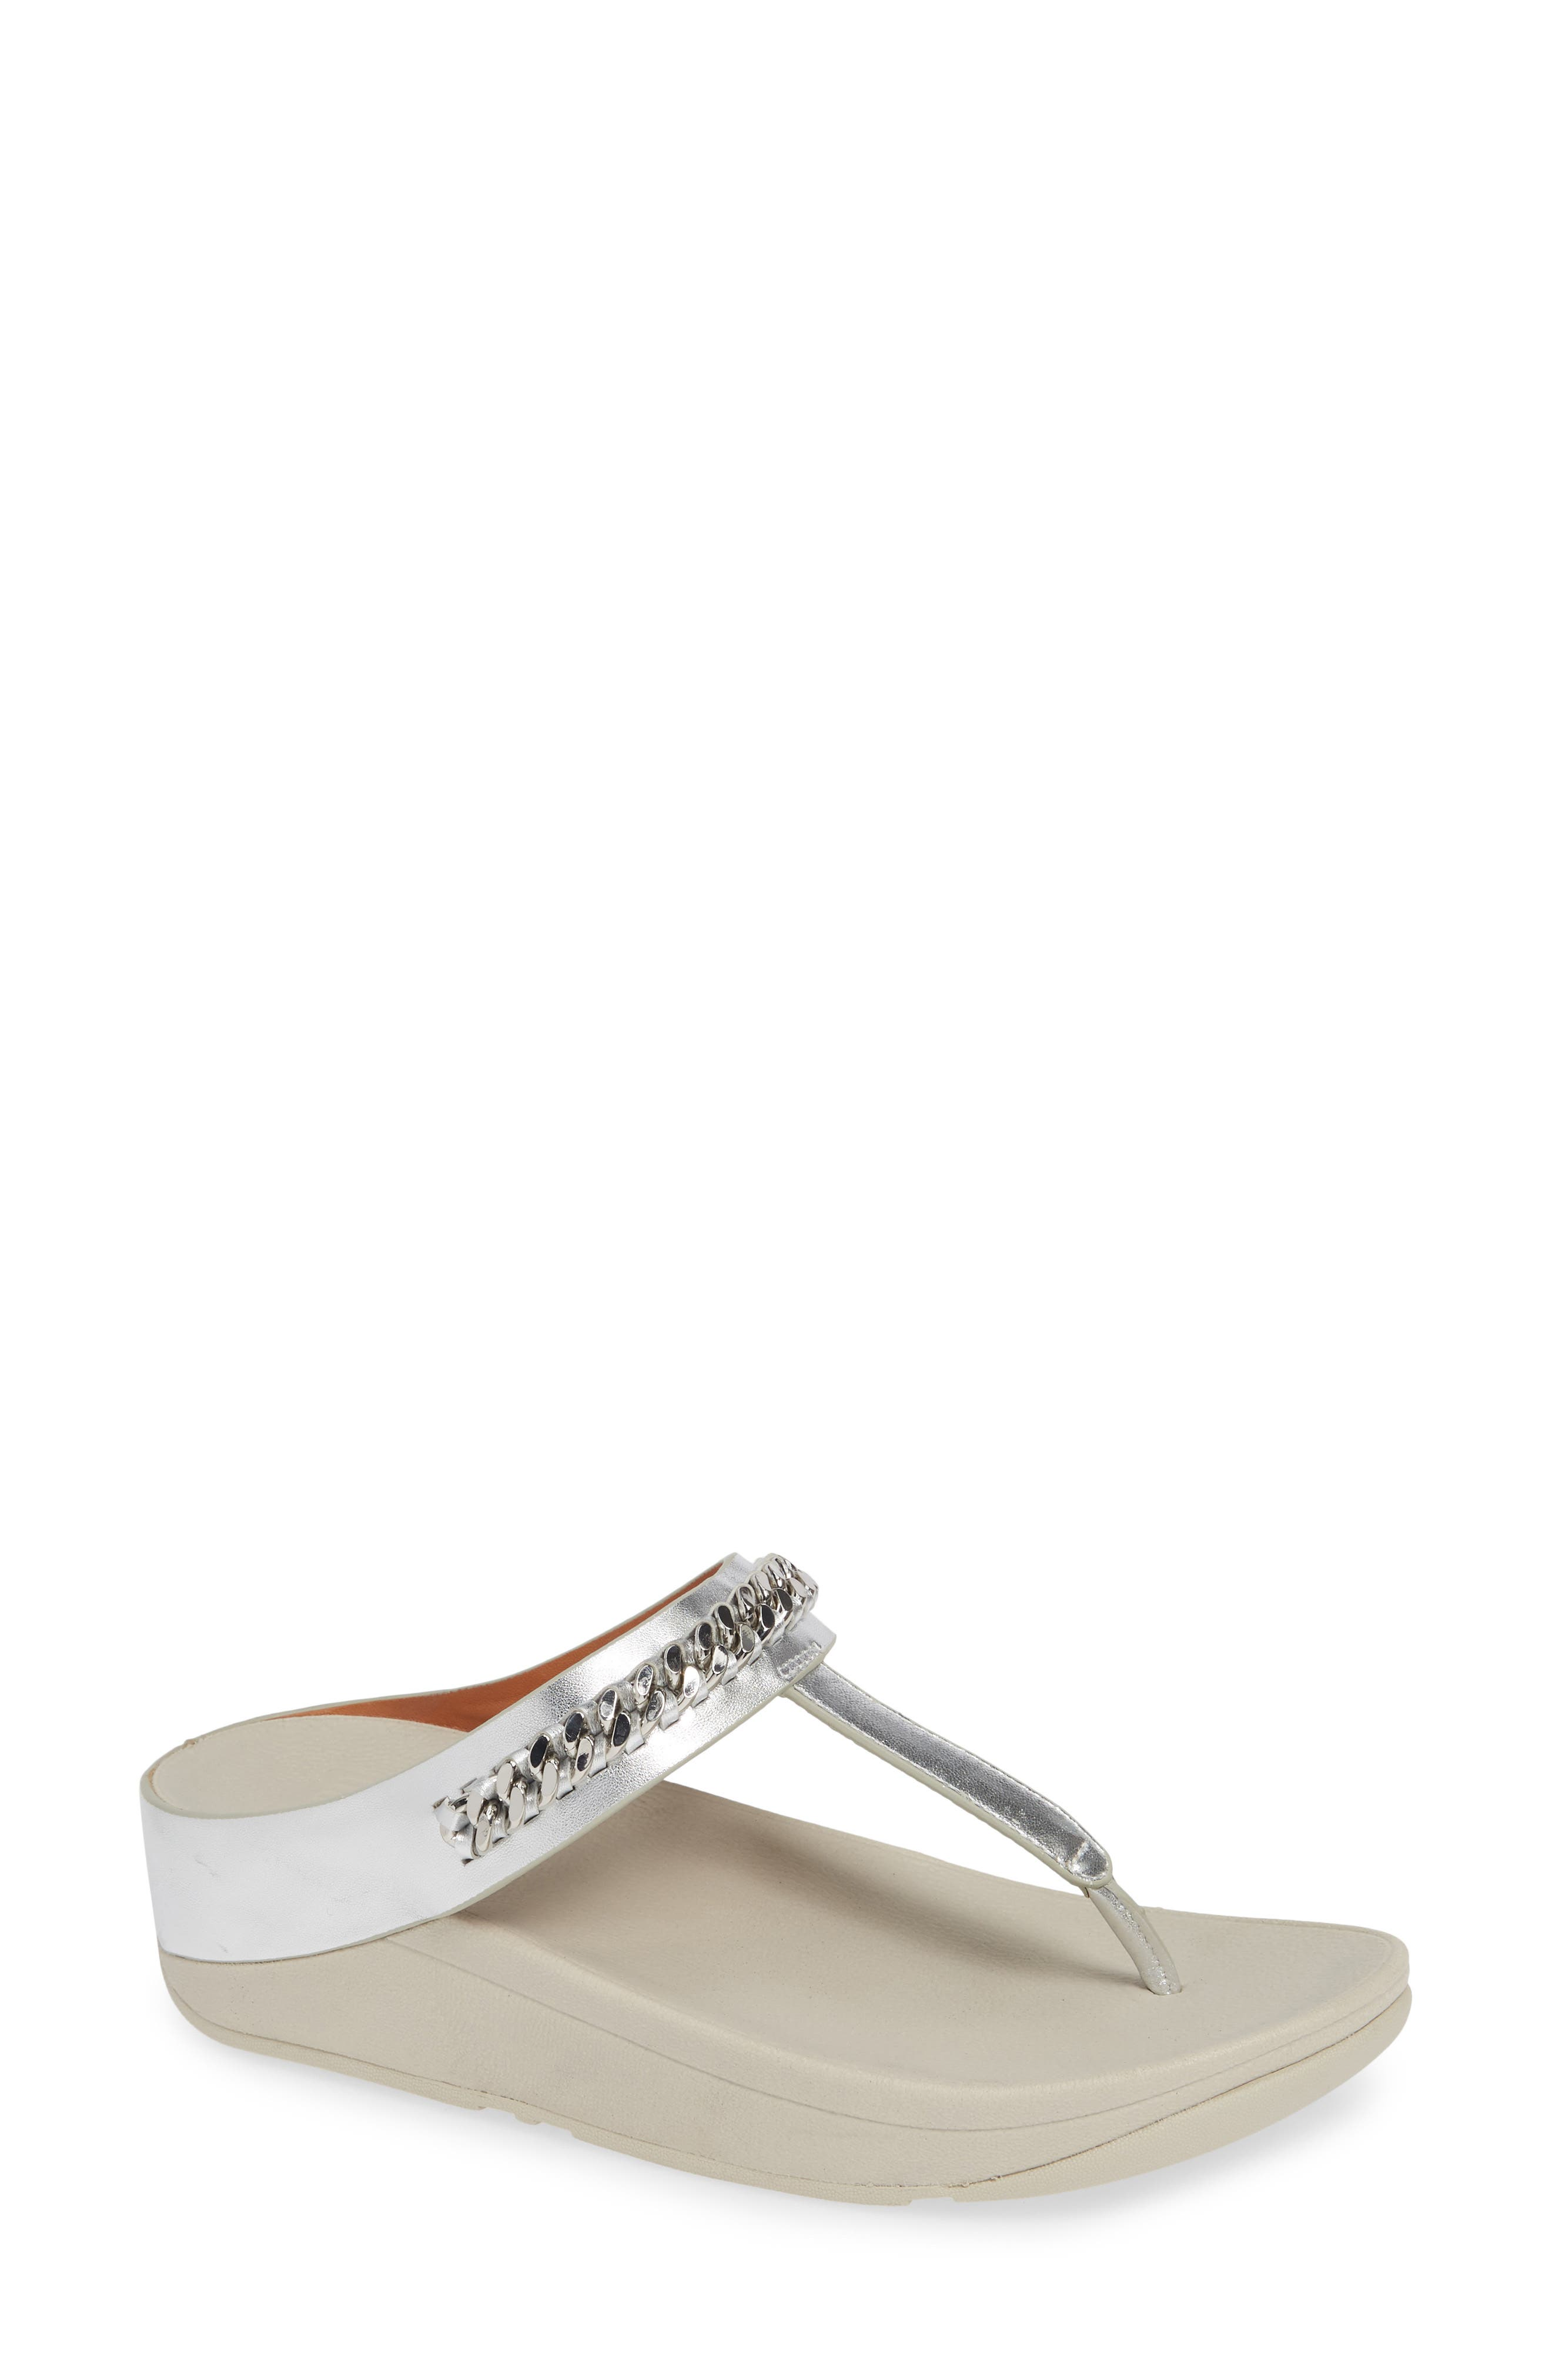 Fino Flip Flop,                             Main thumbnail 1, color,                             SILVER LEATHER